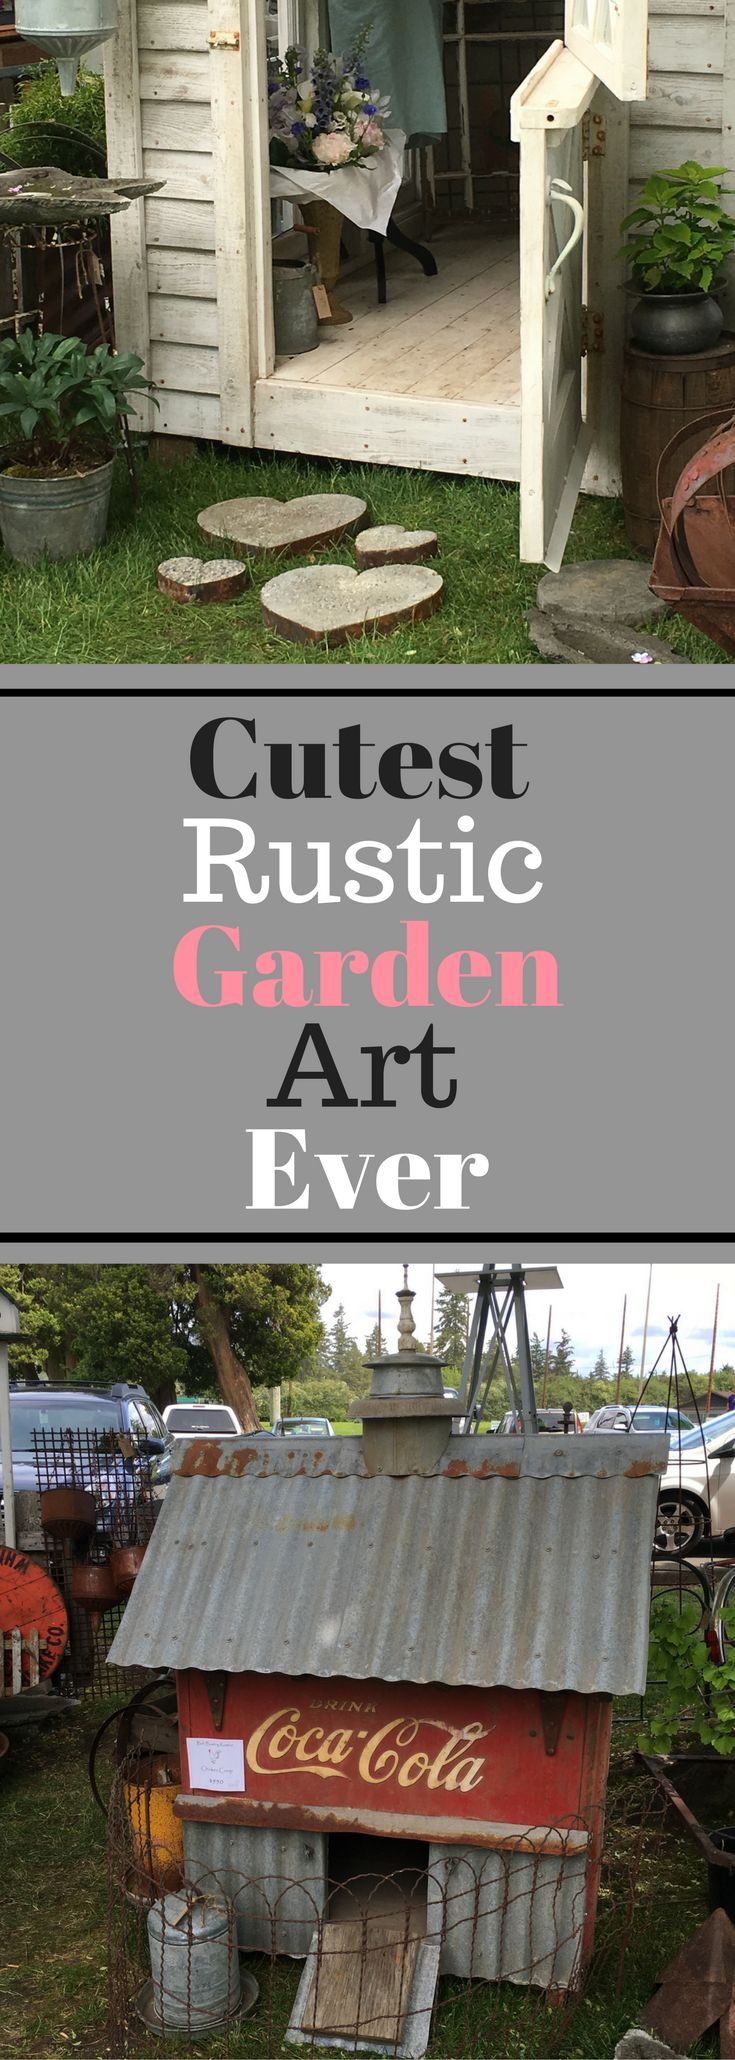 Cutest Rustic Garden Art Ever - Plenty of Photos!